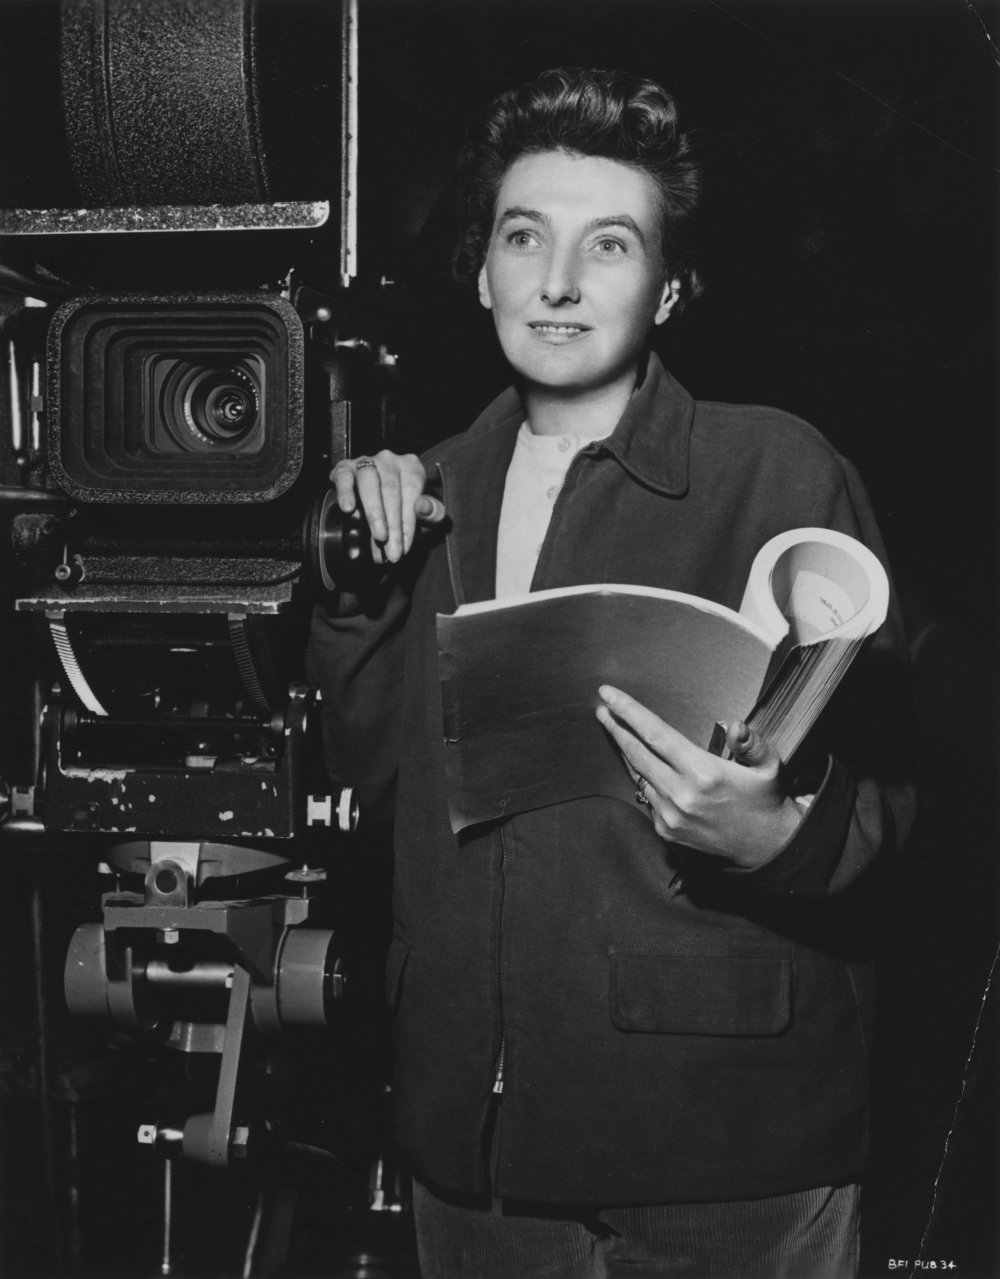 British screenwriter and director Muriel Box, who won an Oscar with her husband Sydney for their screenplay for The Seventh Veil in 1945